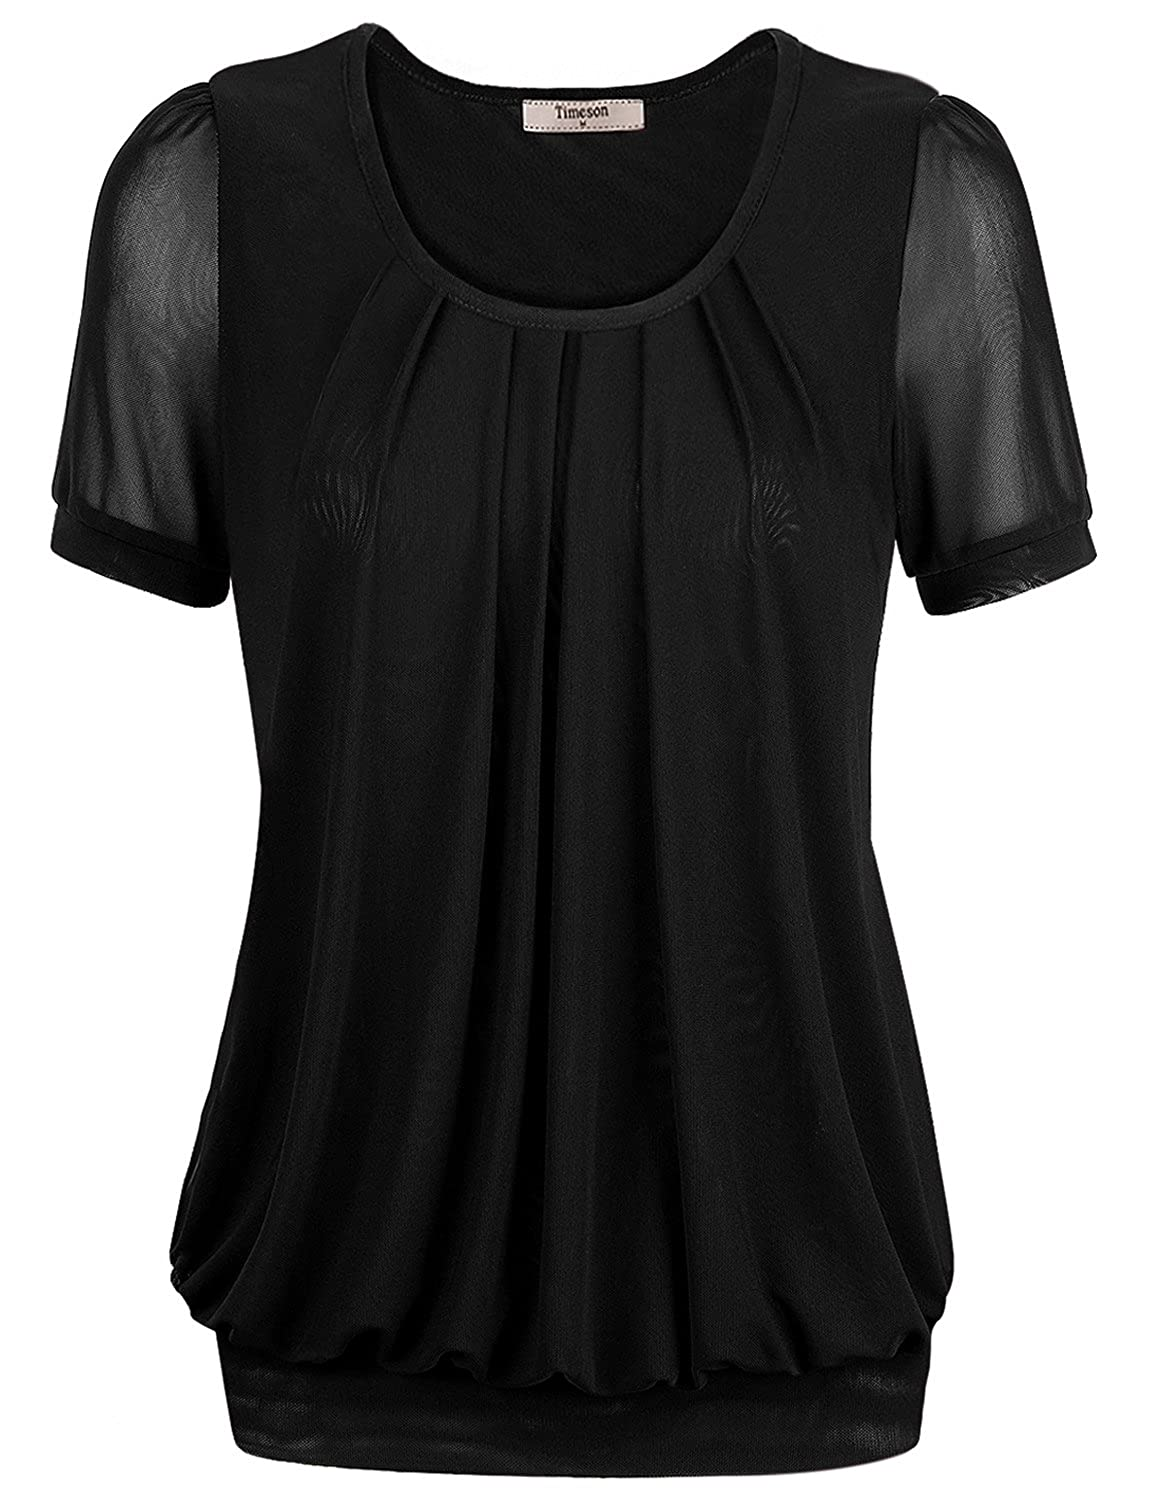 Timeson Womens Short Sleeve Scoop Neck Pleated Front Fitted Blouse Top